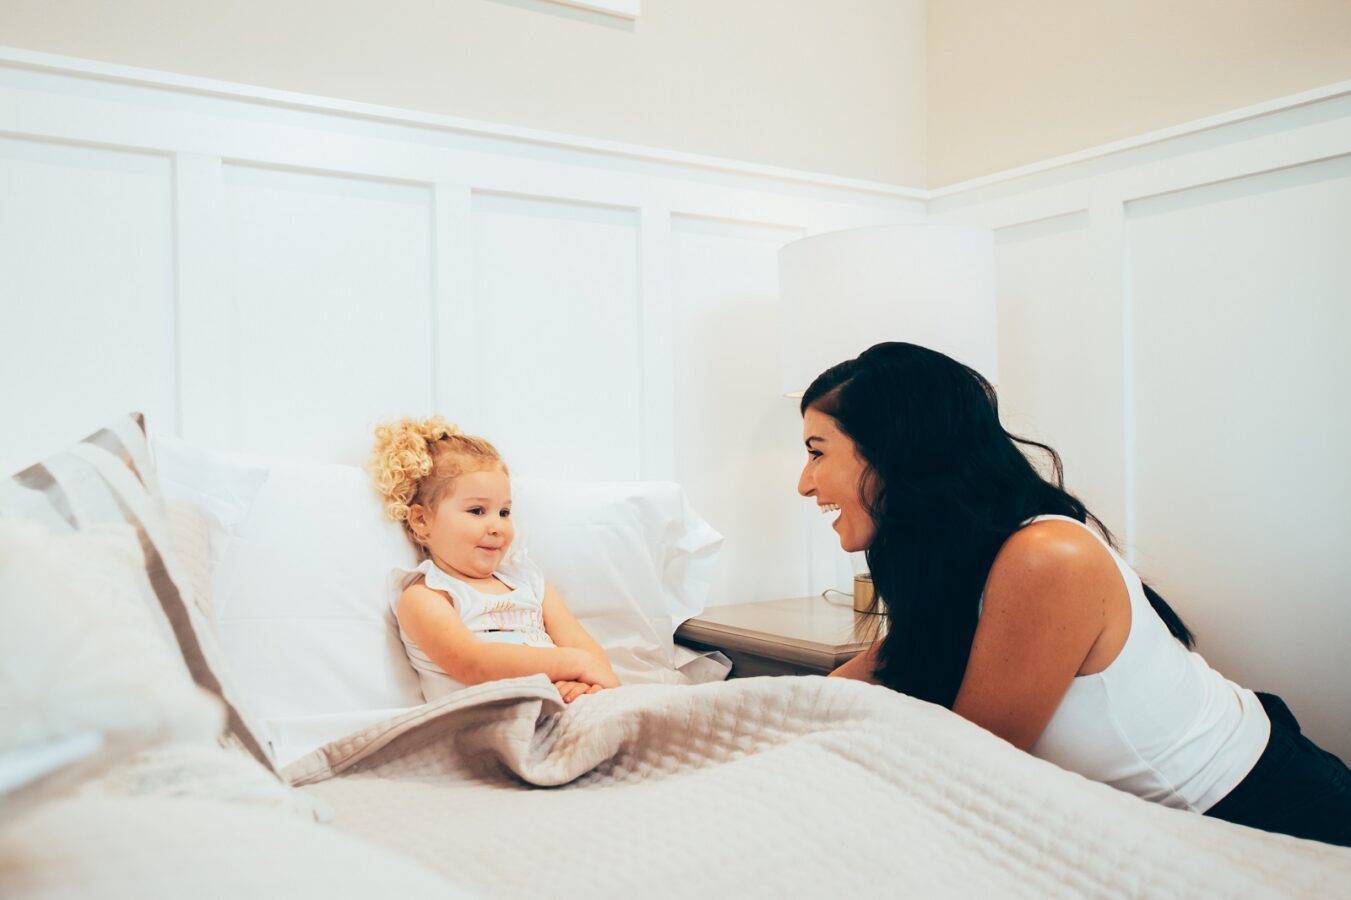 mom tucking her daughter into bed